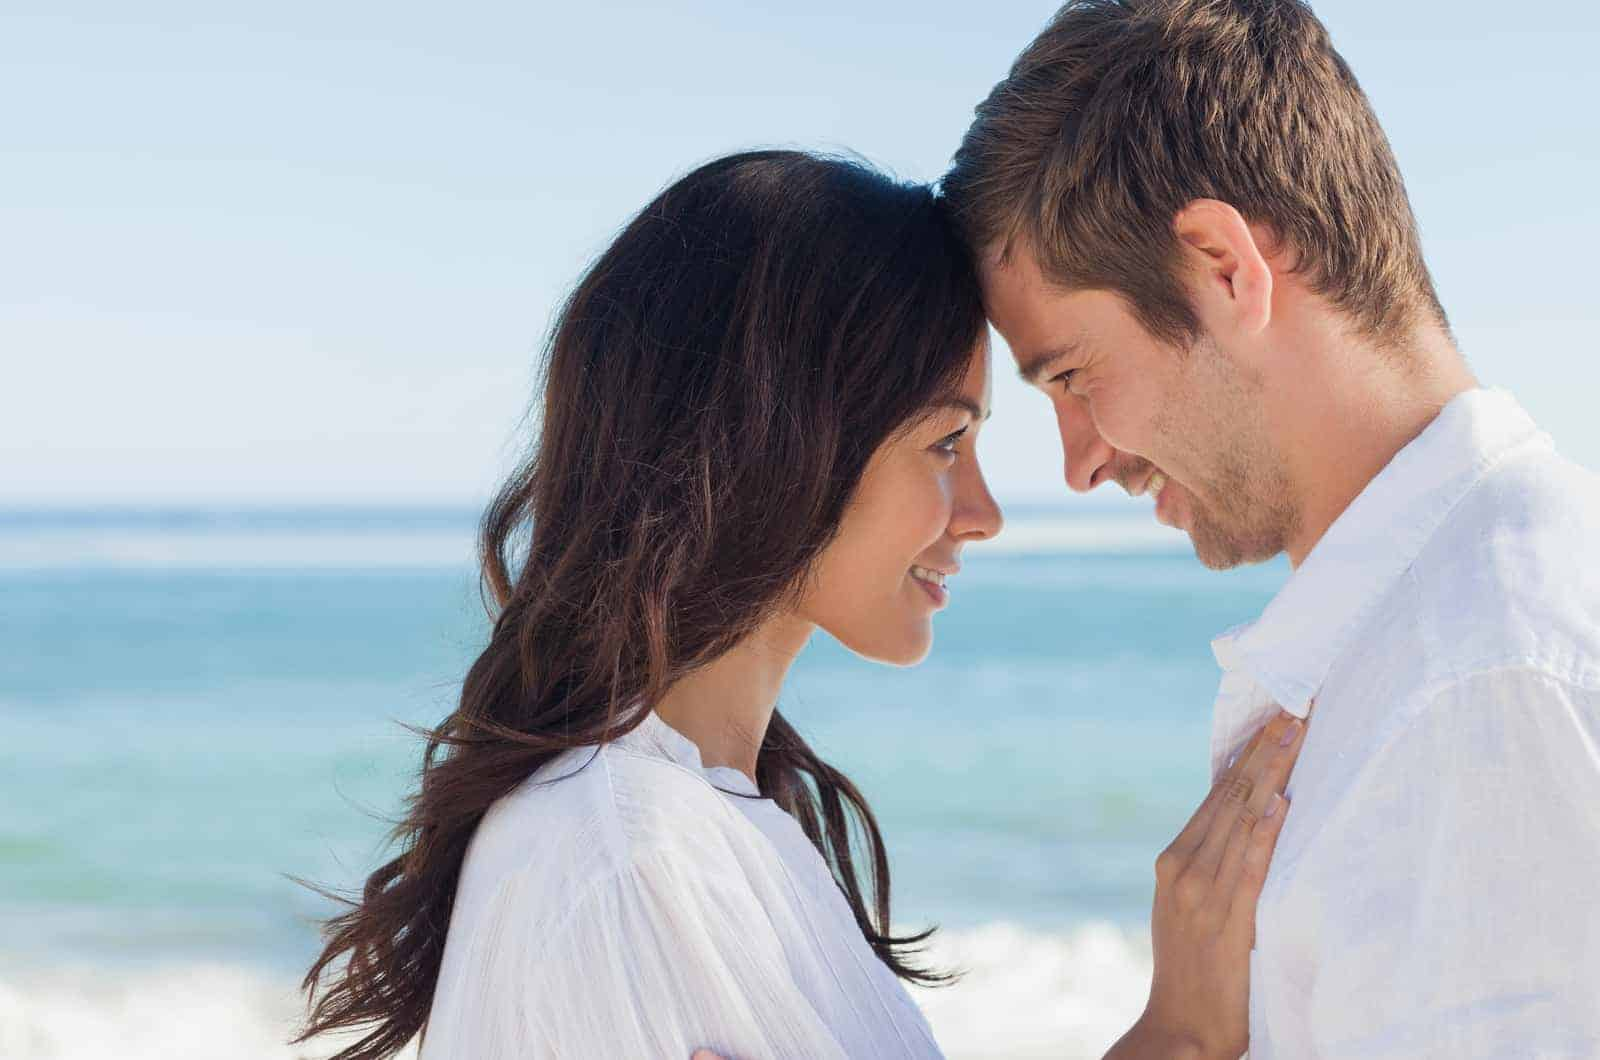 couple at the beach looking at each other